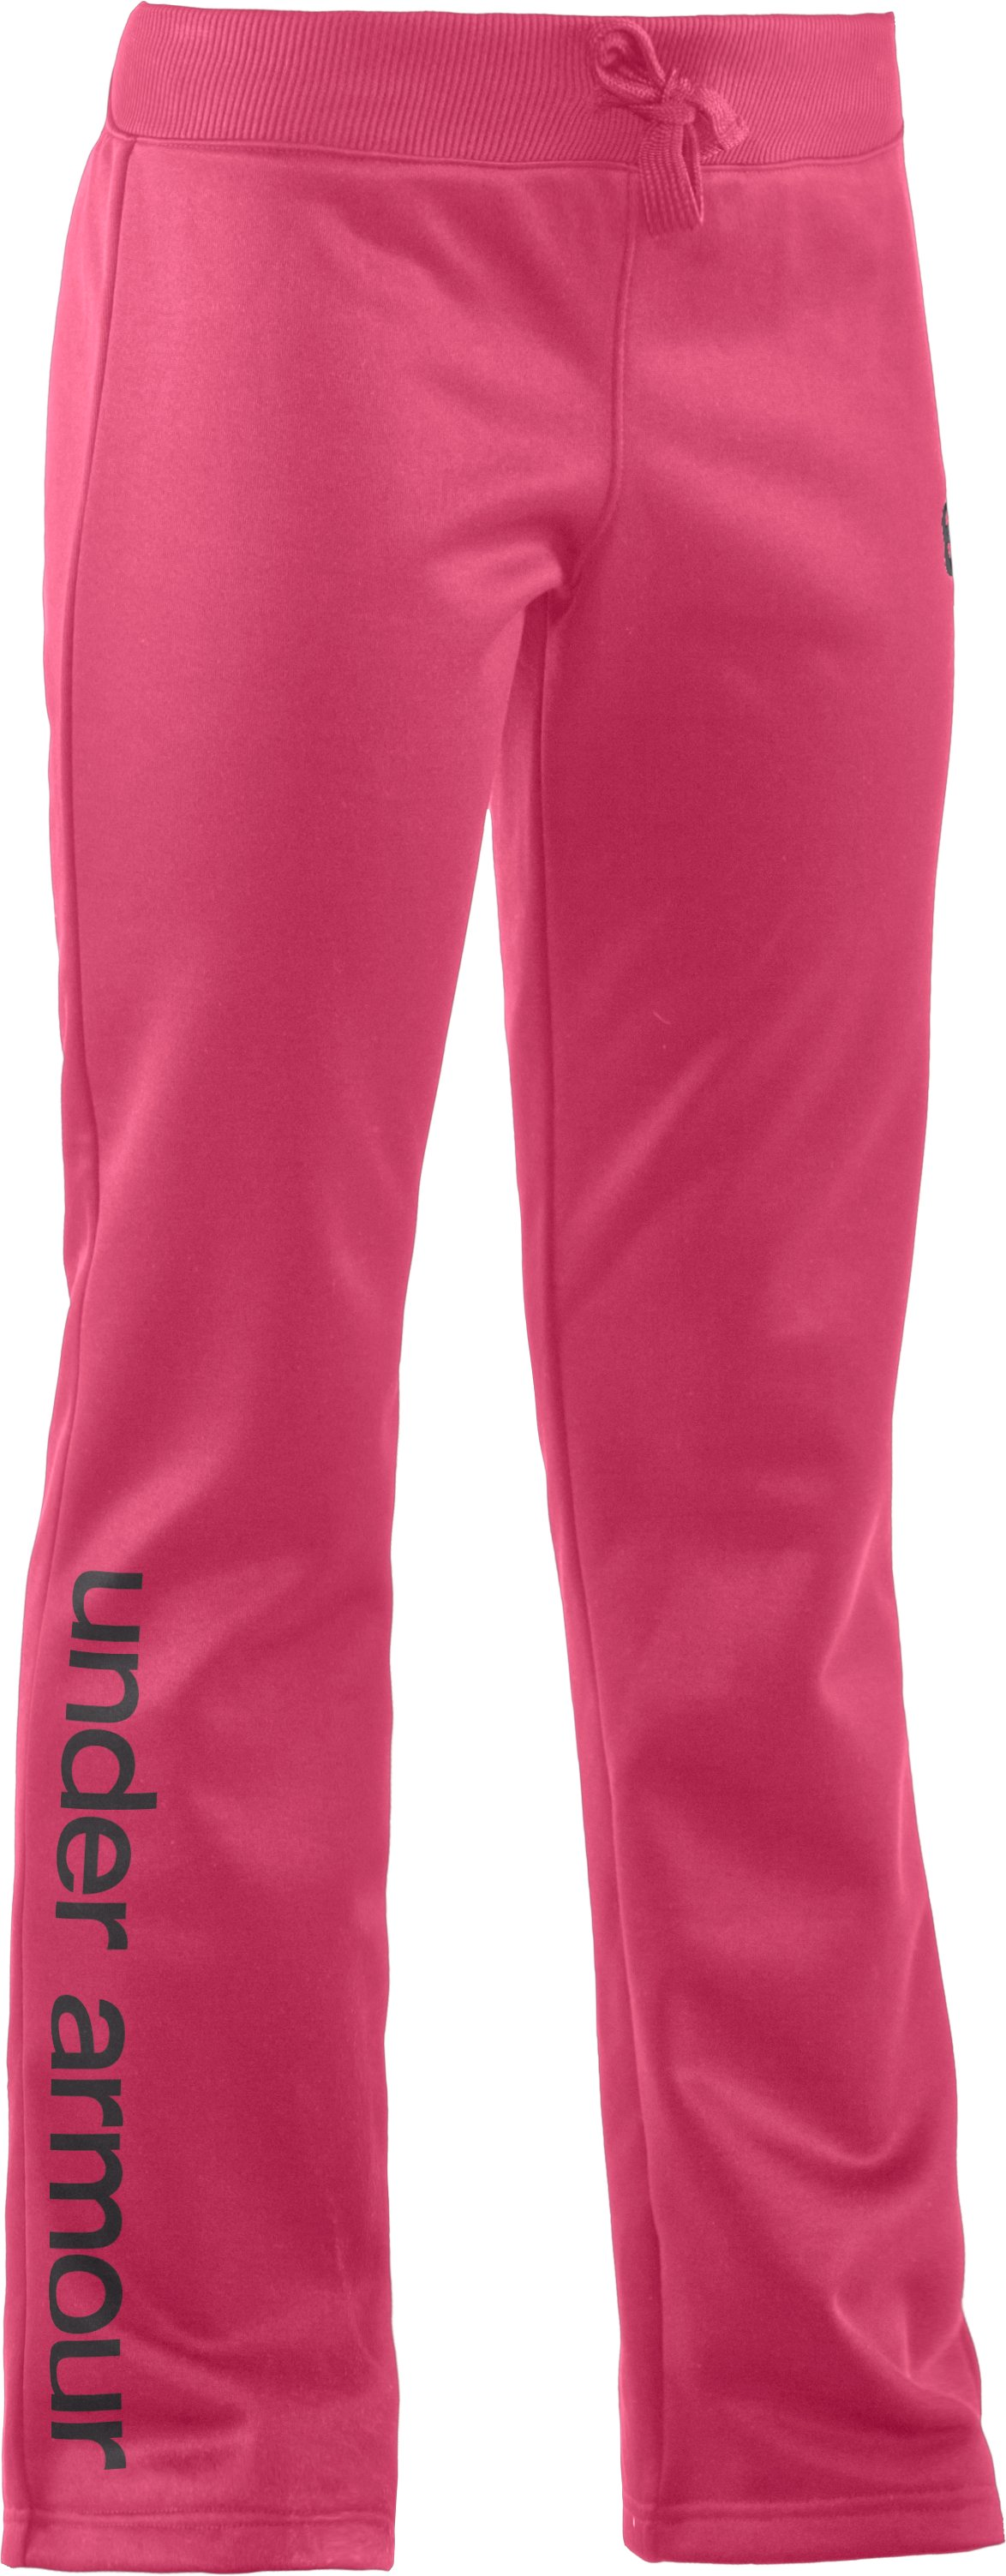 Girls' Armour® Fleece Storm Pant, Ultra